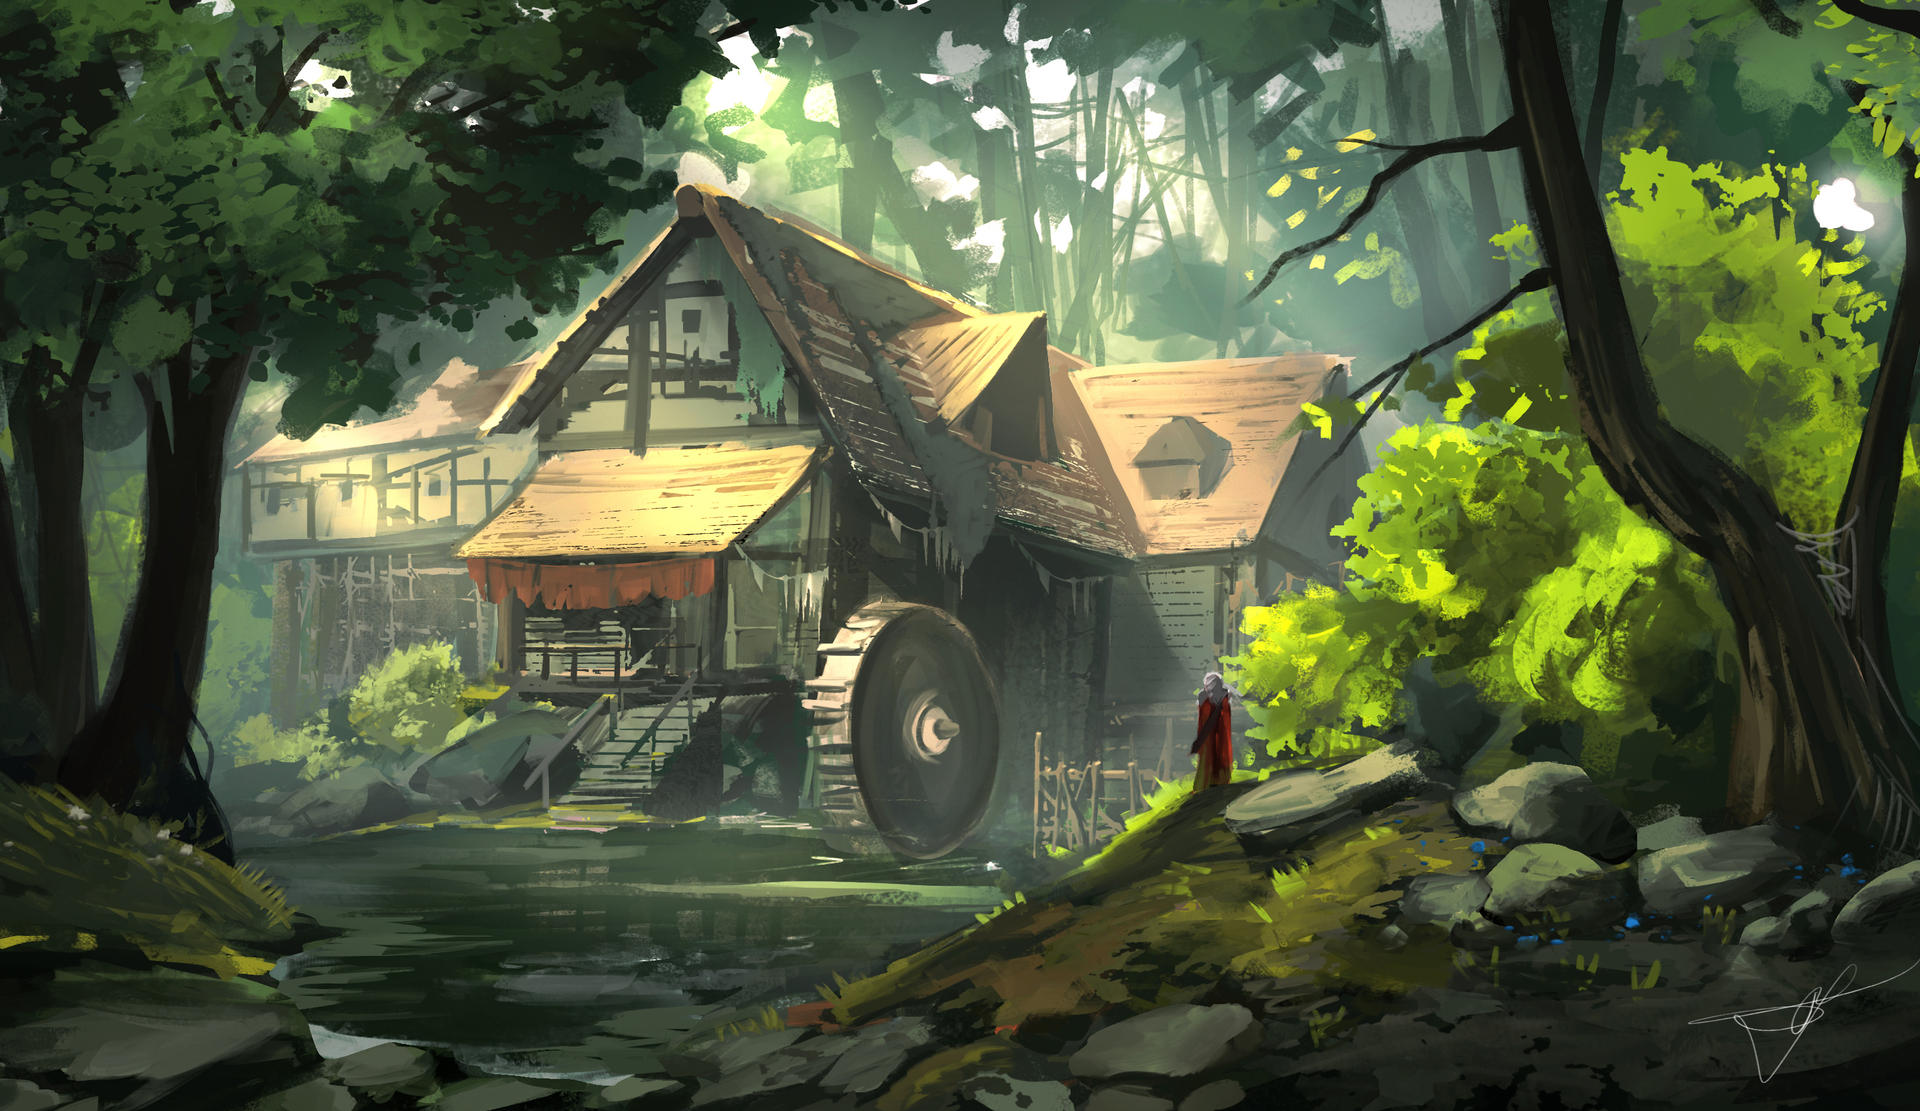 Watermill on the forest [Sketch]